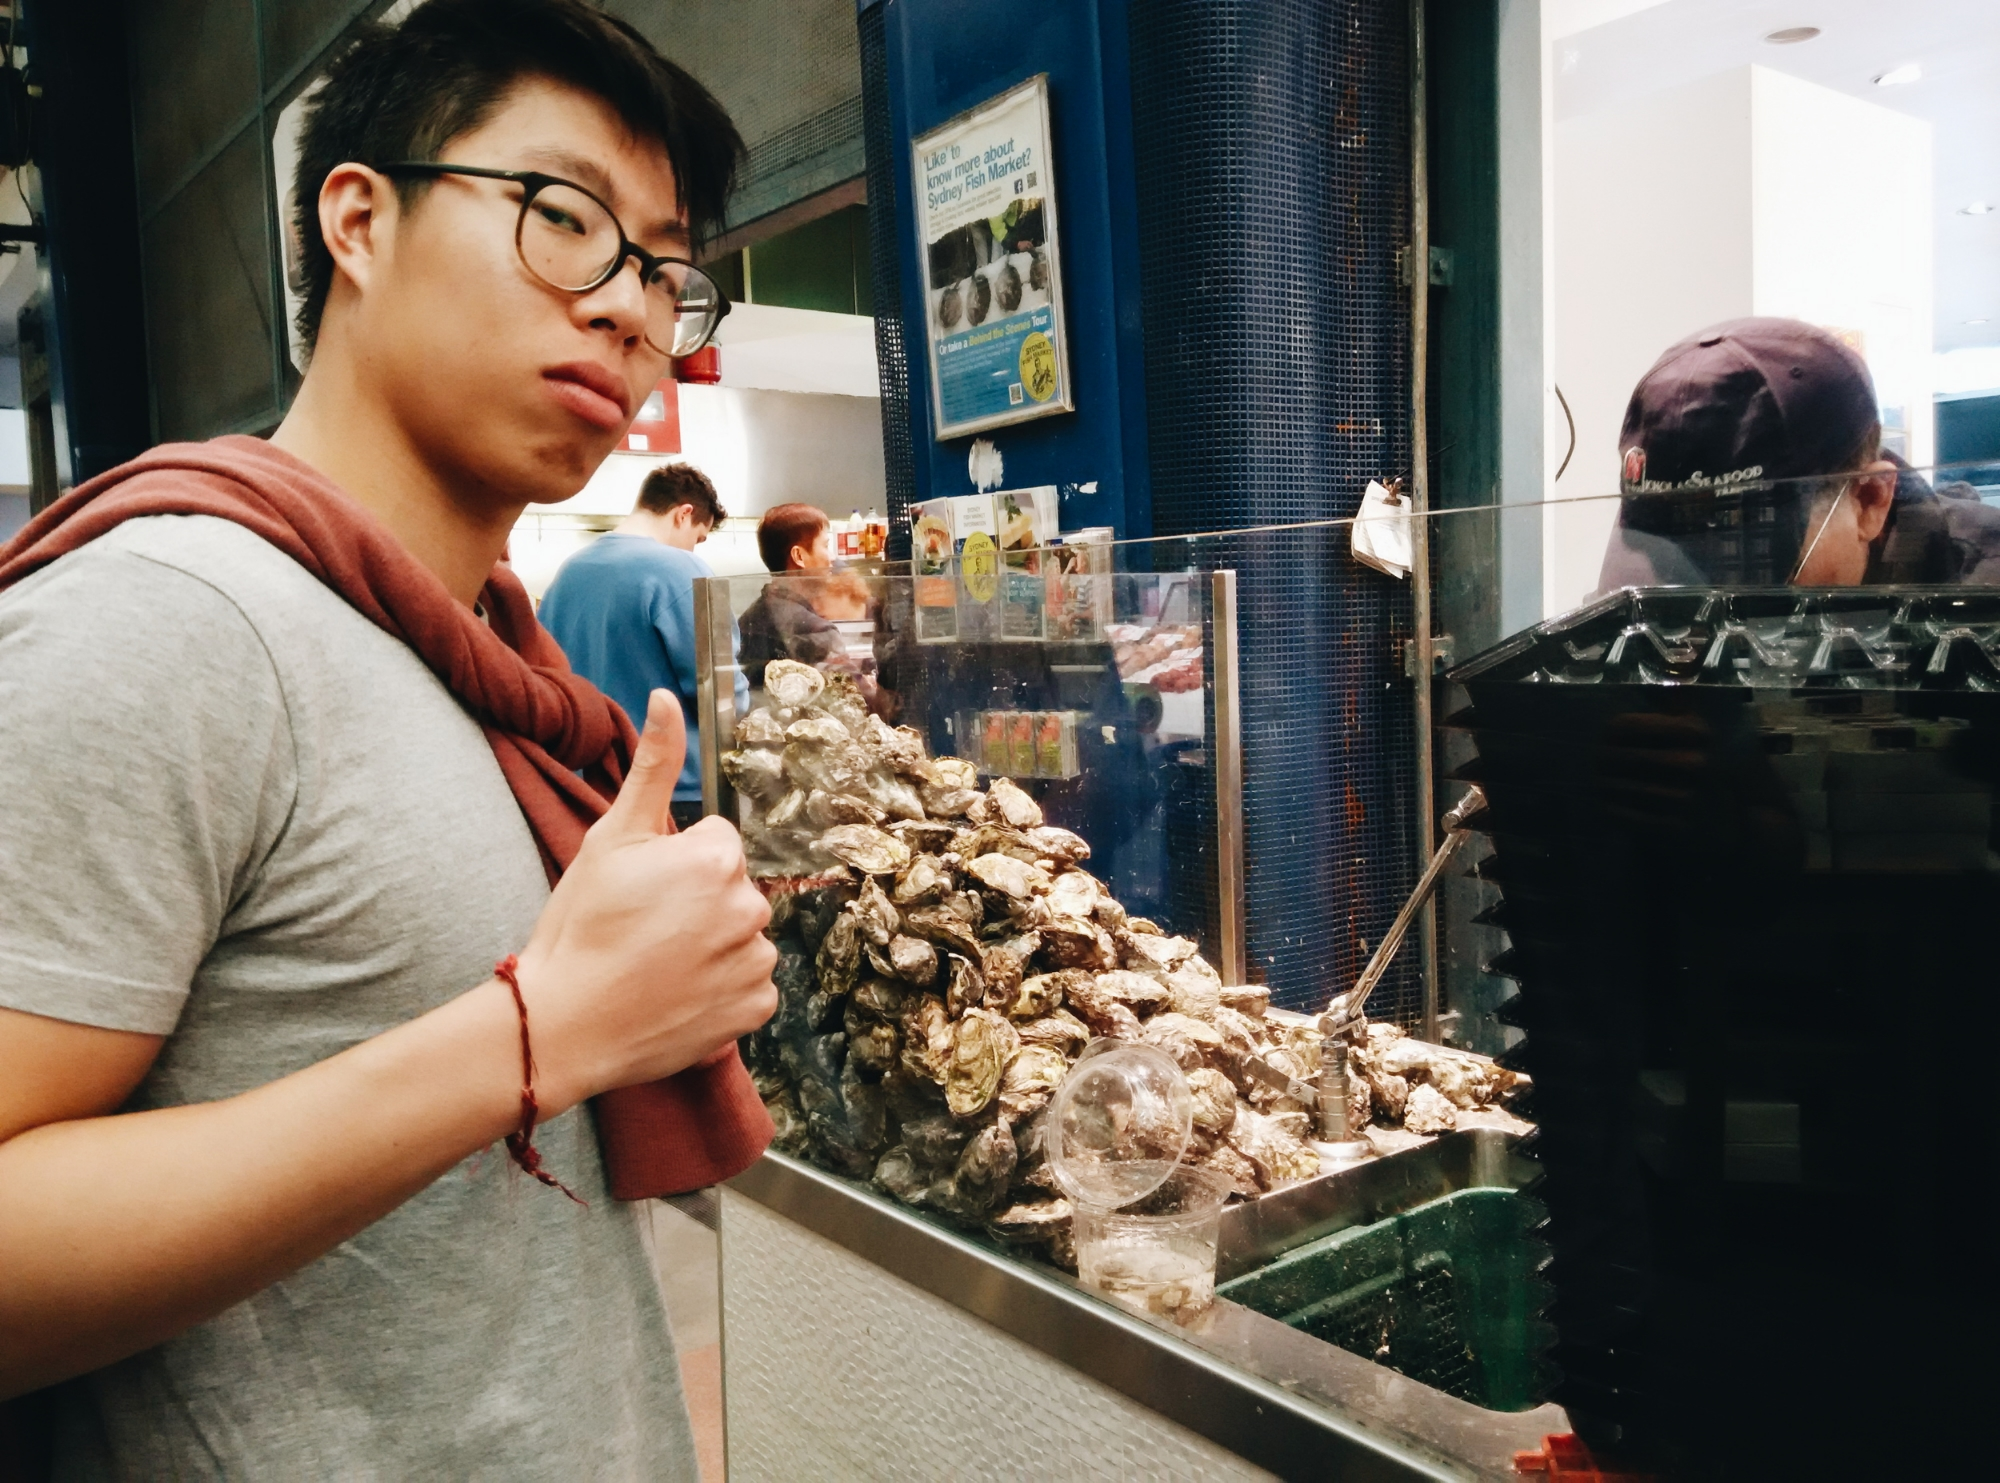 Watching the oysters get shucked and ready!